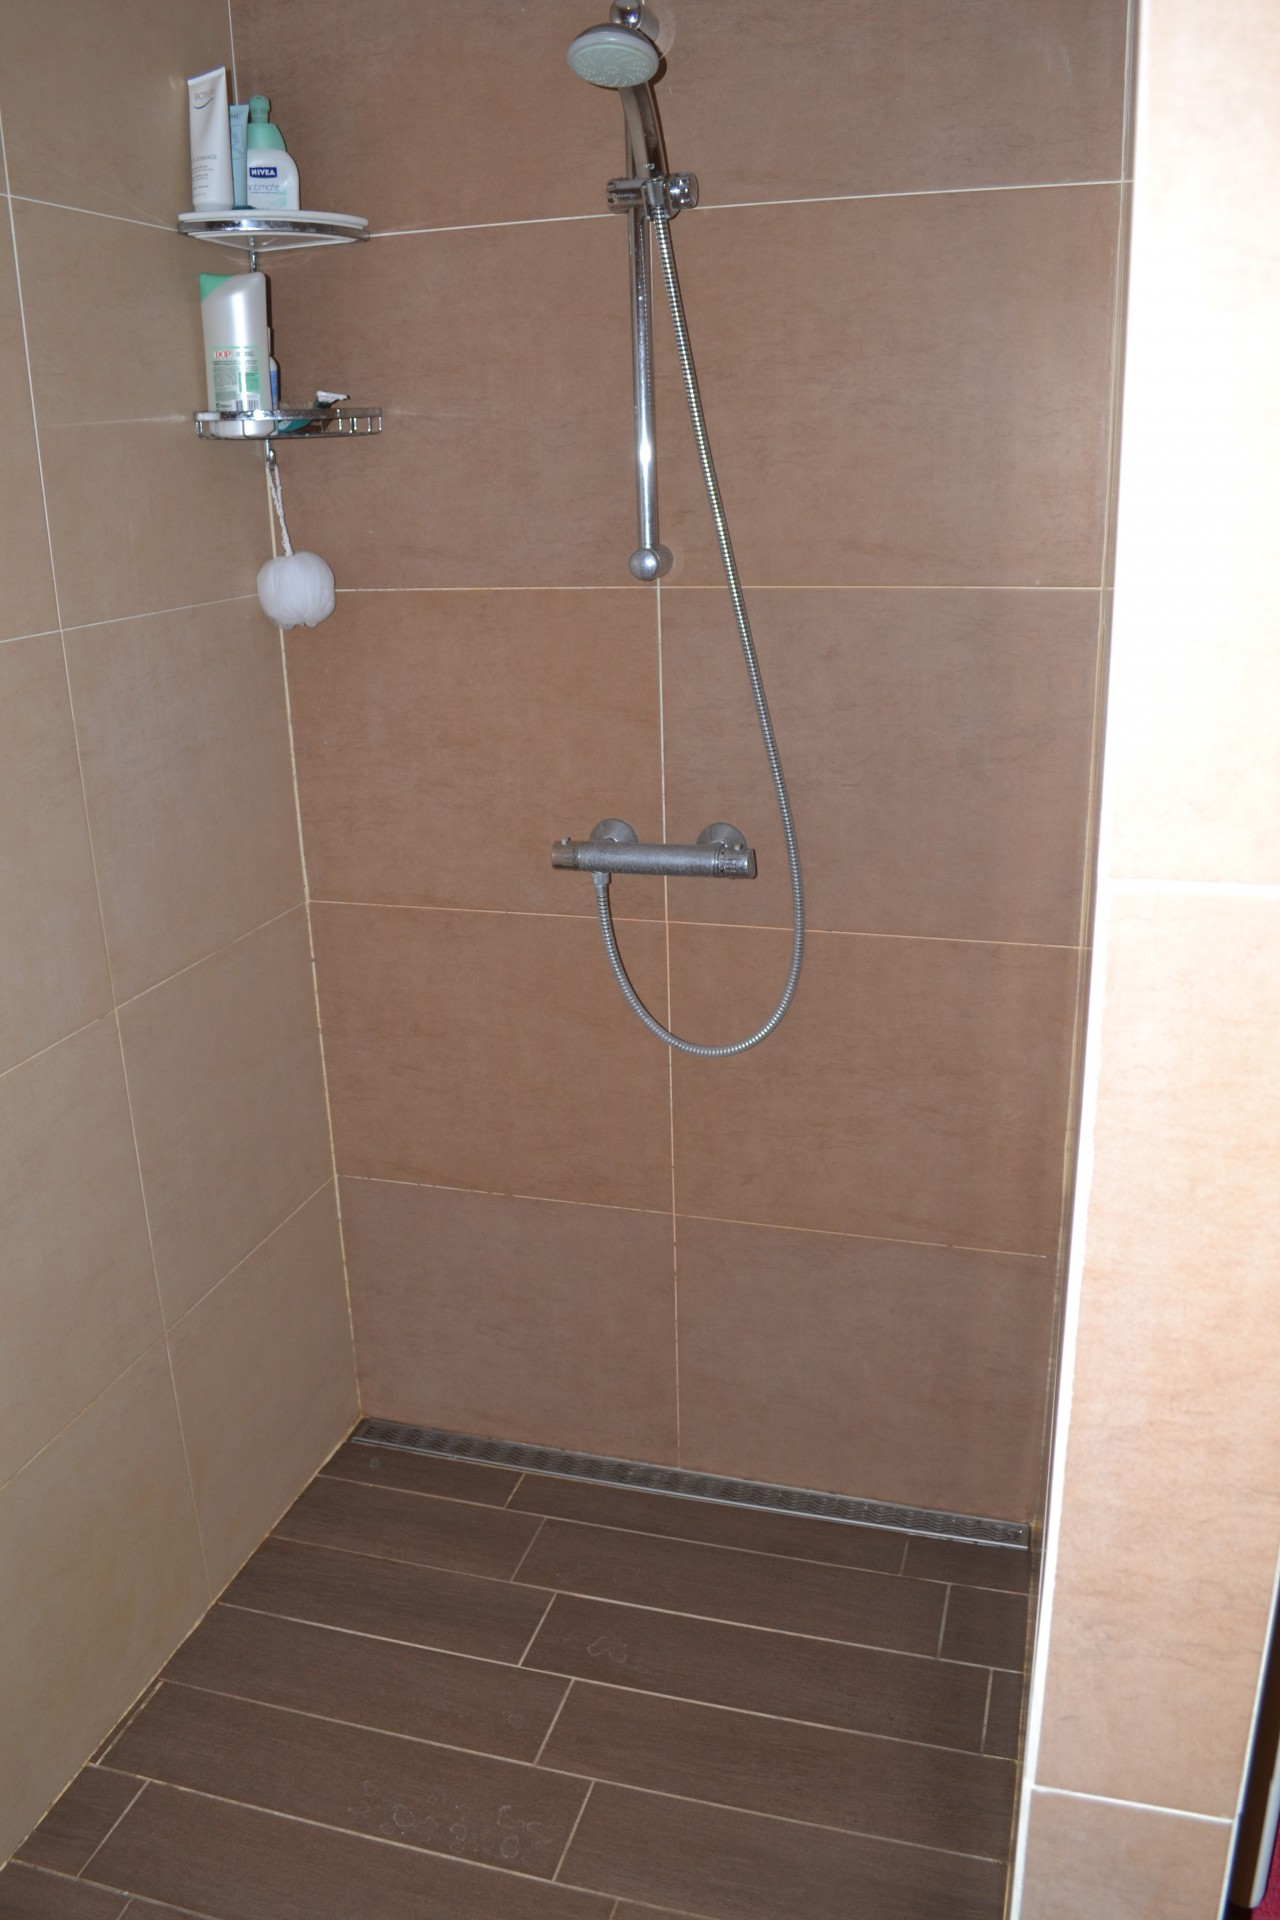 Carrelage pour douche a l italienne maison design for Carrelage 01